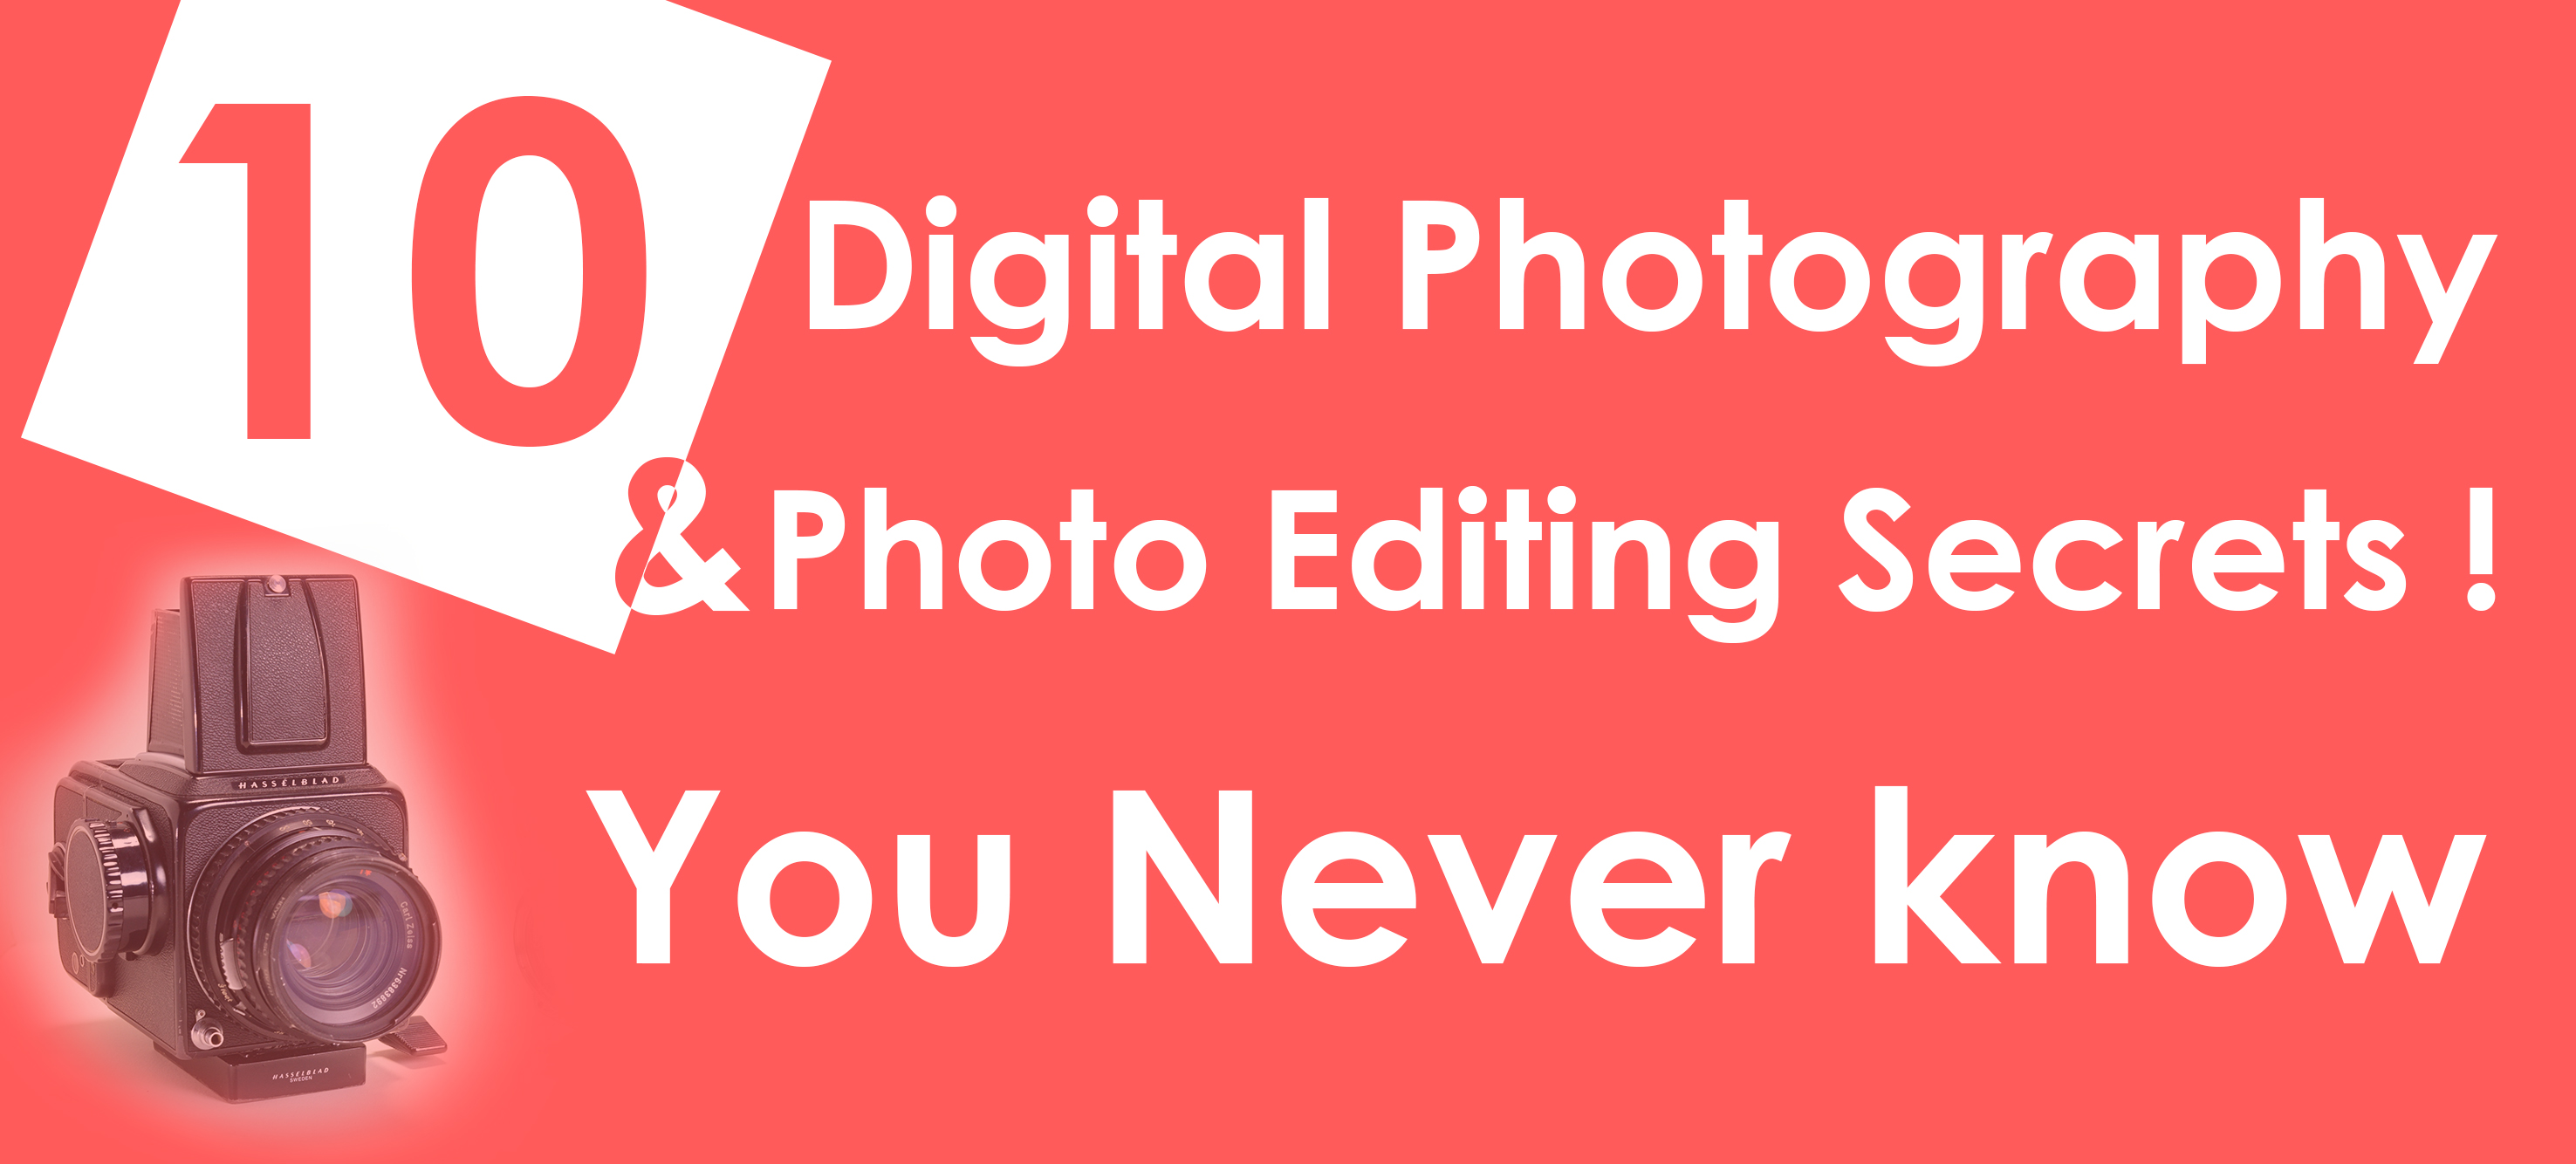 10 Digital Photography